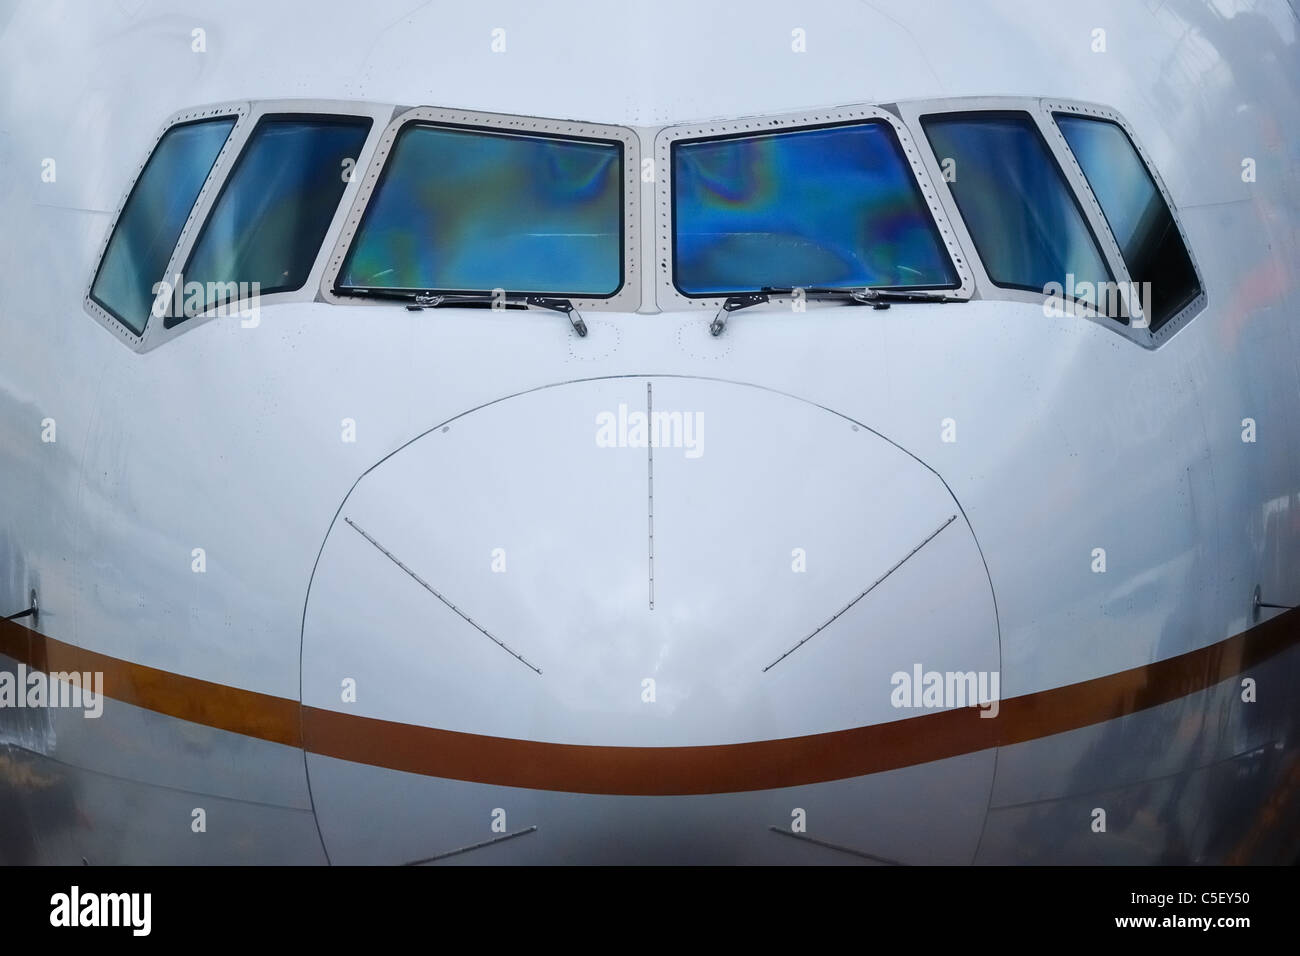 Nosecone and front screen of large aircraft - Stock Image